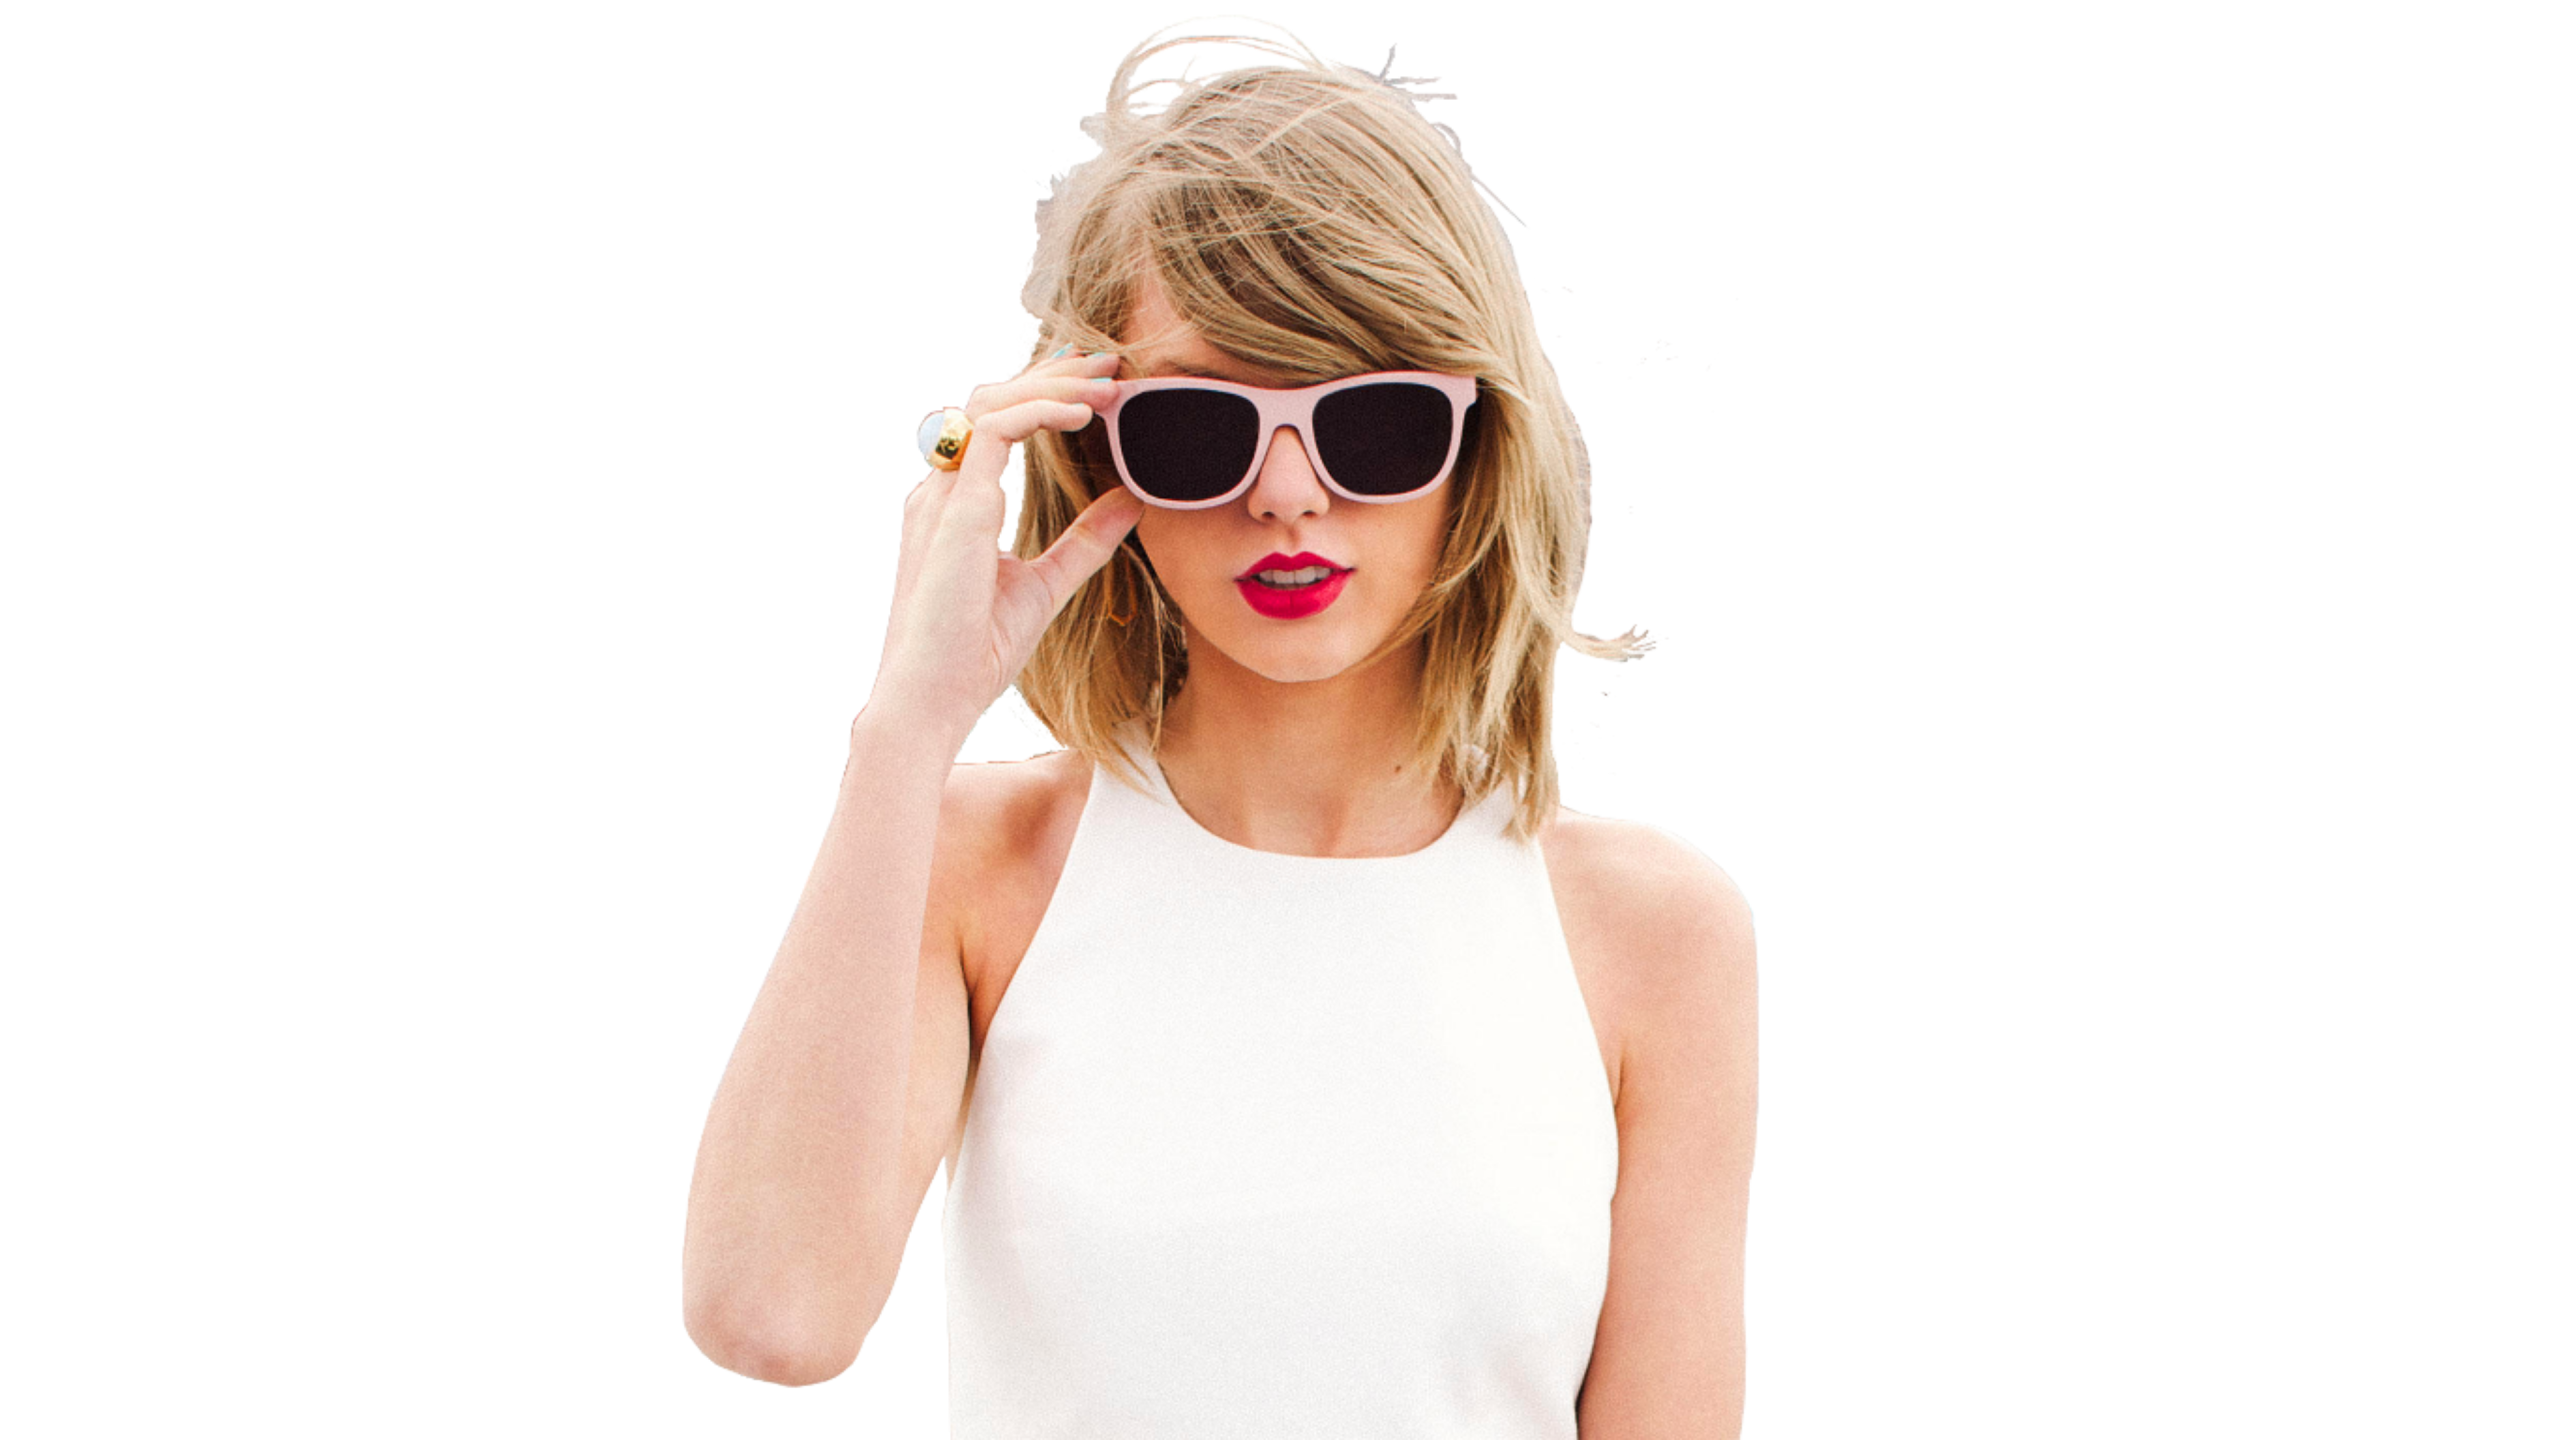 Hottest 4K Taylor Swift Wallpaper | Free 4K Wallpaper